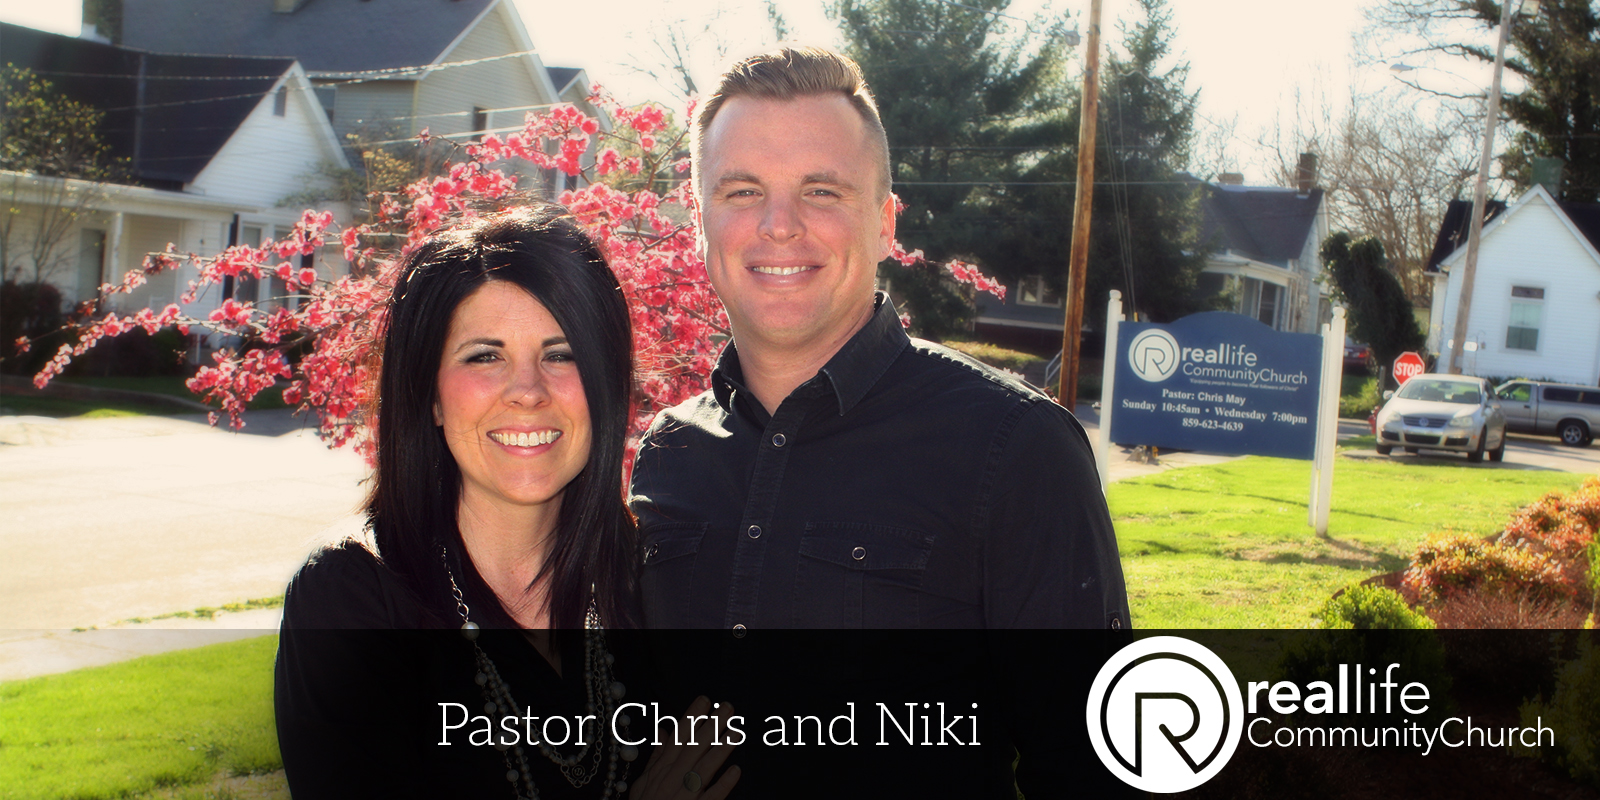 Lead Pastor and wife - Pastor Chris May and Niki May